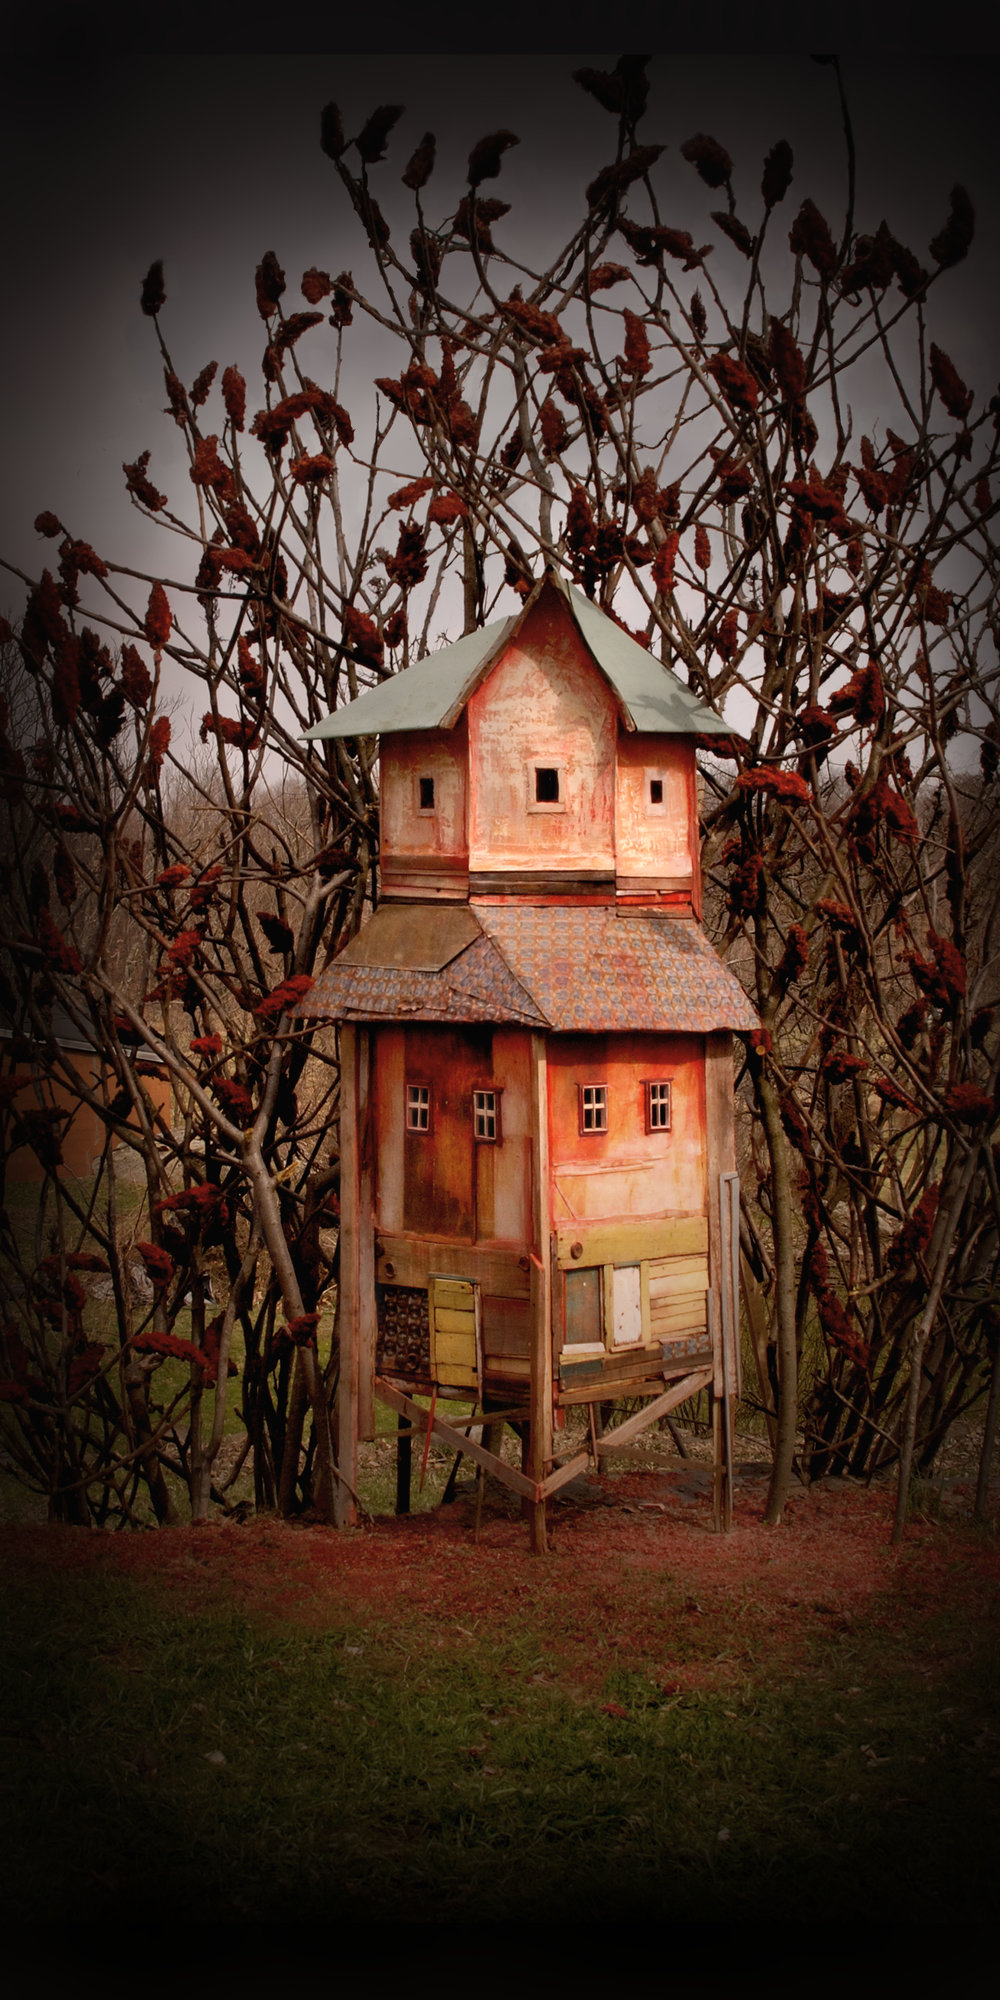 Amber Village, Photograph/Sculpture, Robert Hite, 2008